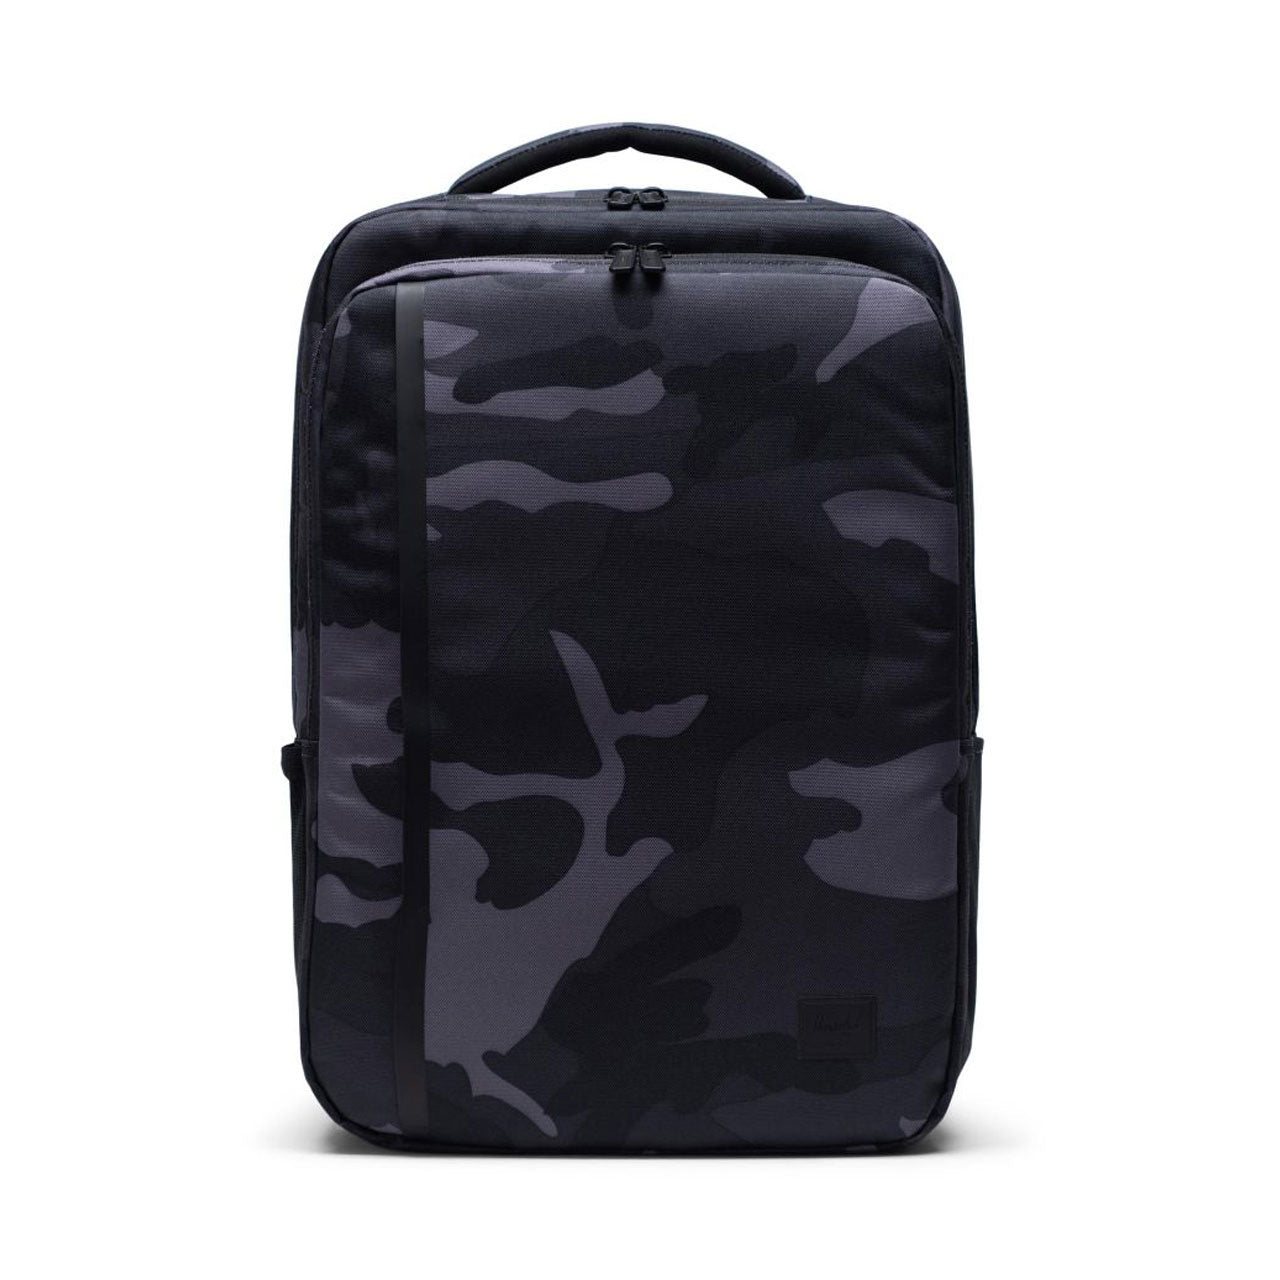 Herschel Supply Co. Cordura Travel Backpack